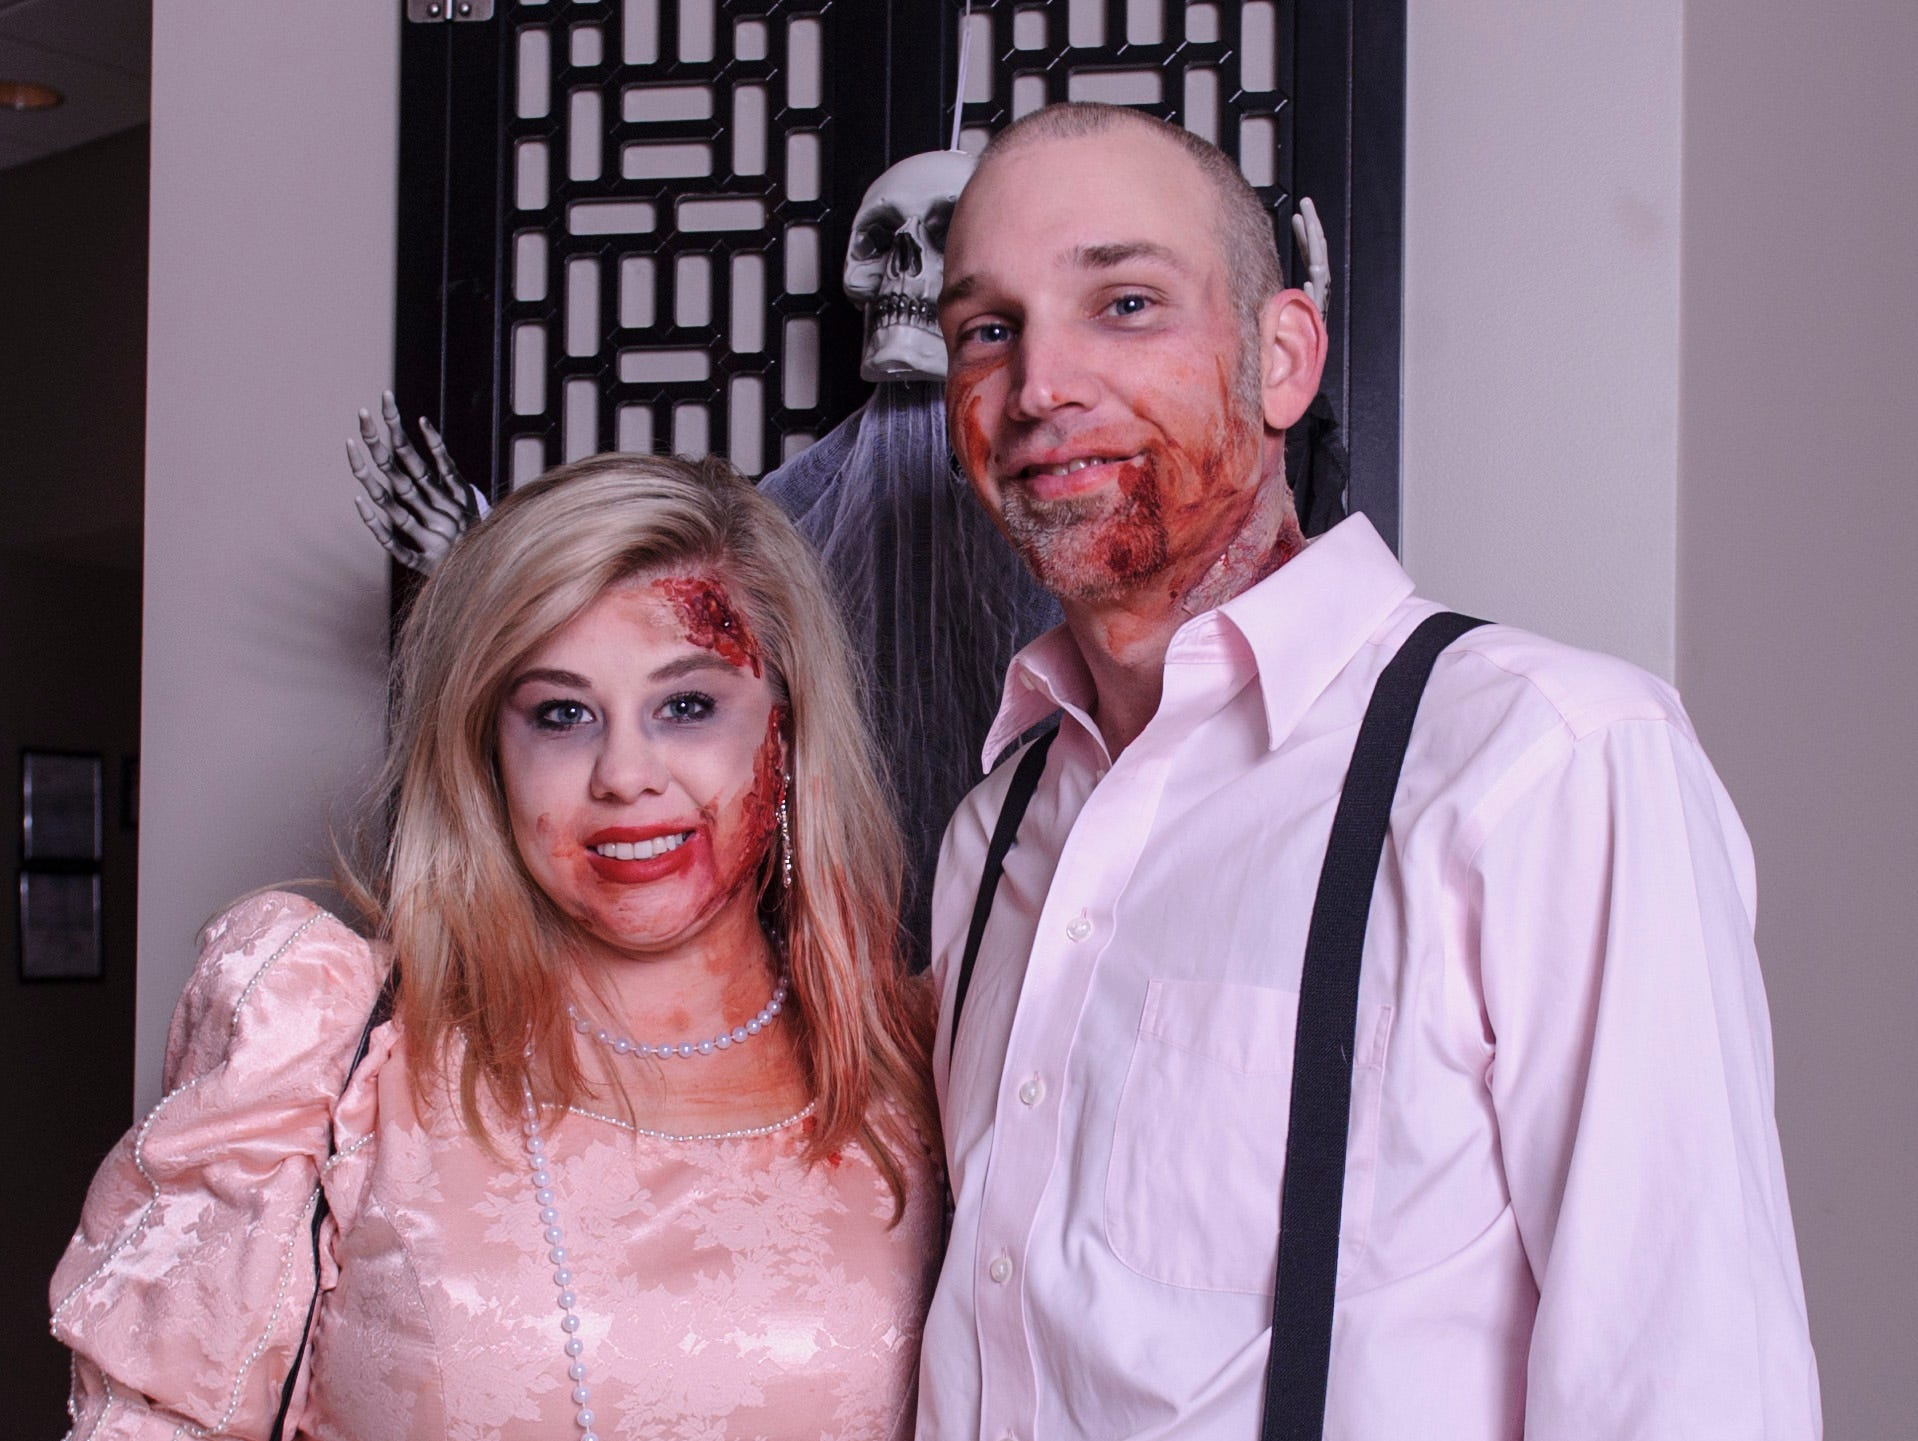 Brandy Sciara and Charlie Sciara at the Zombie Prom on Saturday, Oct. 20, 2018.